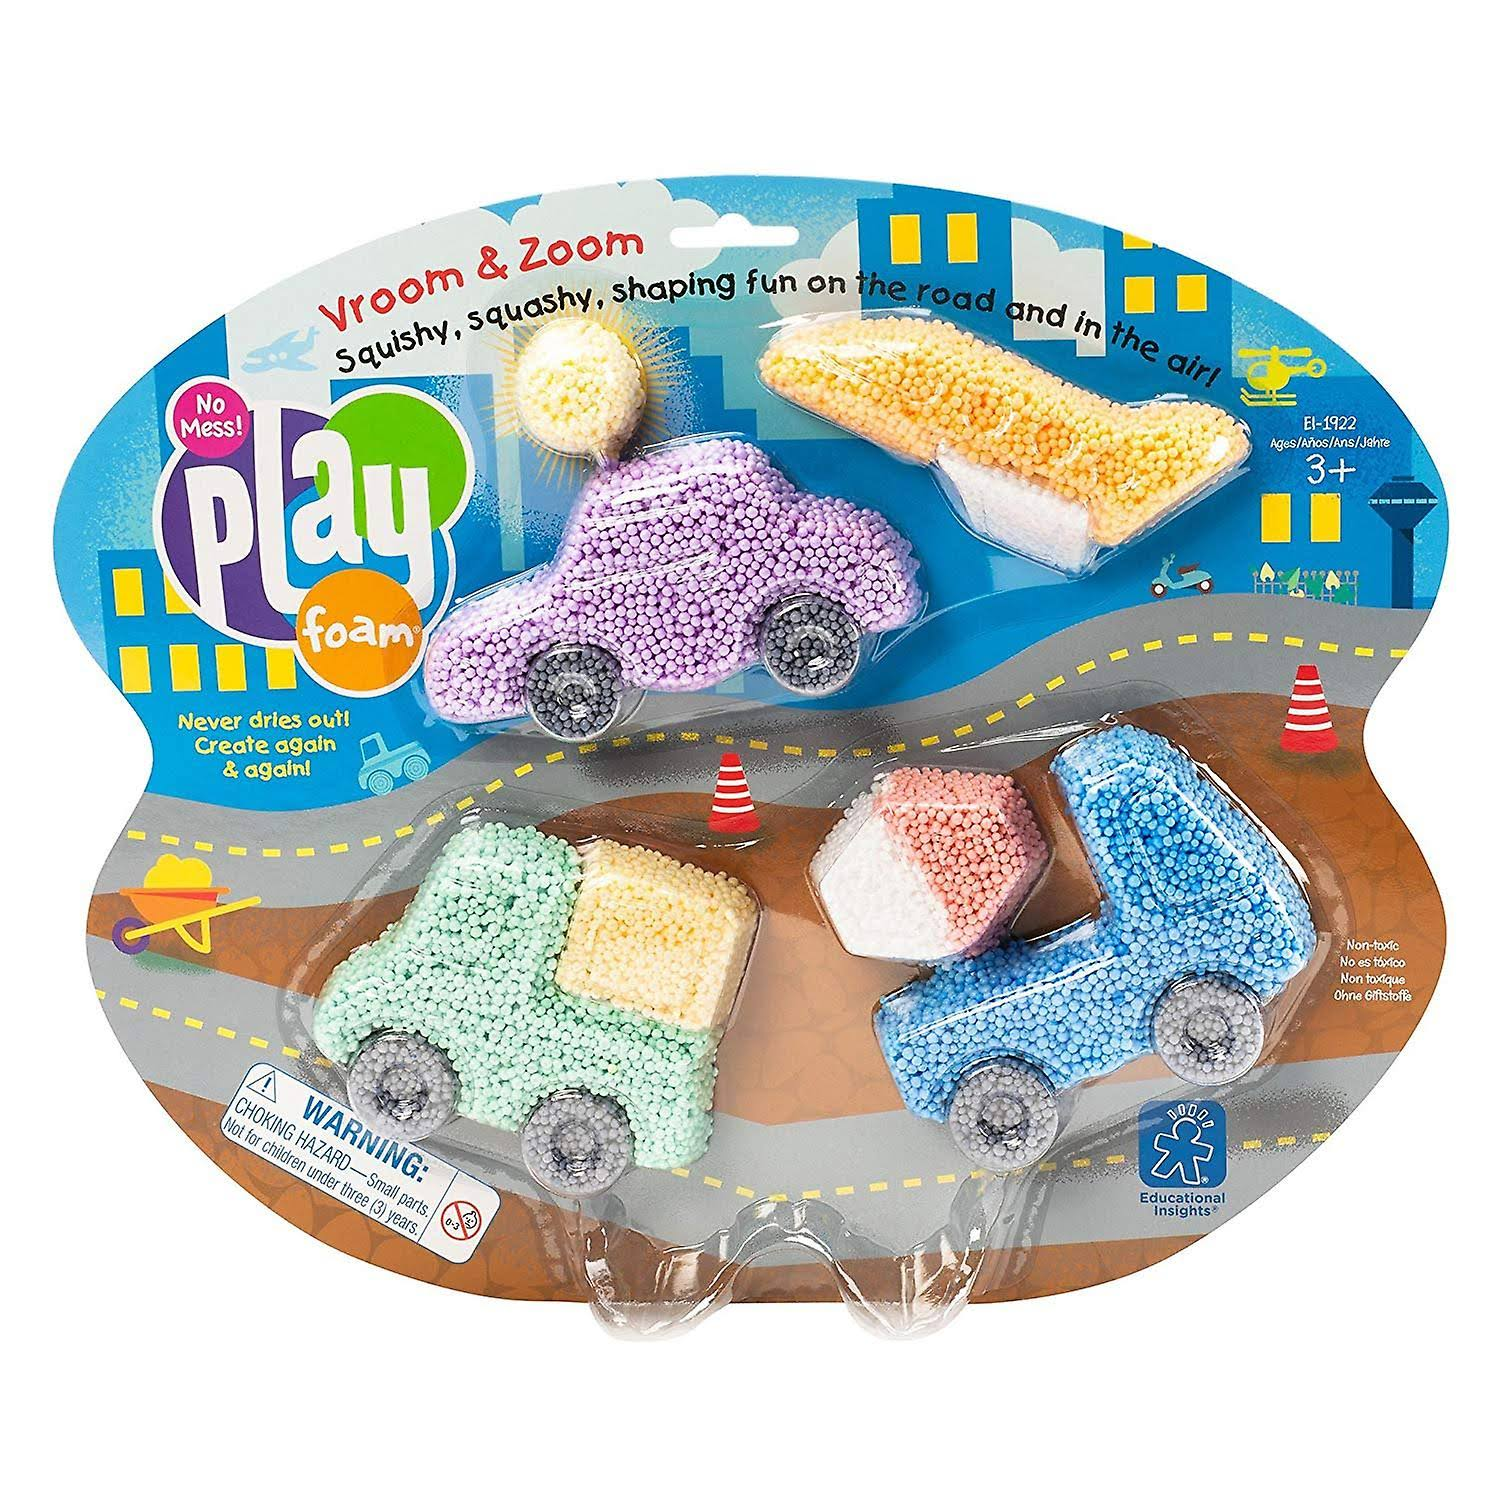 Educational Insights Playfoam Toy Set - Vroom and Zoom Themed Set